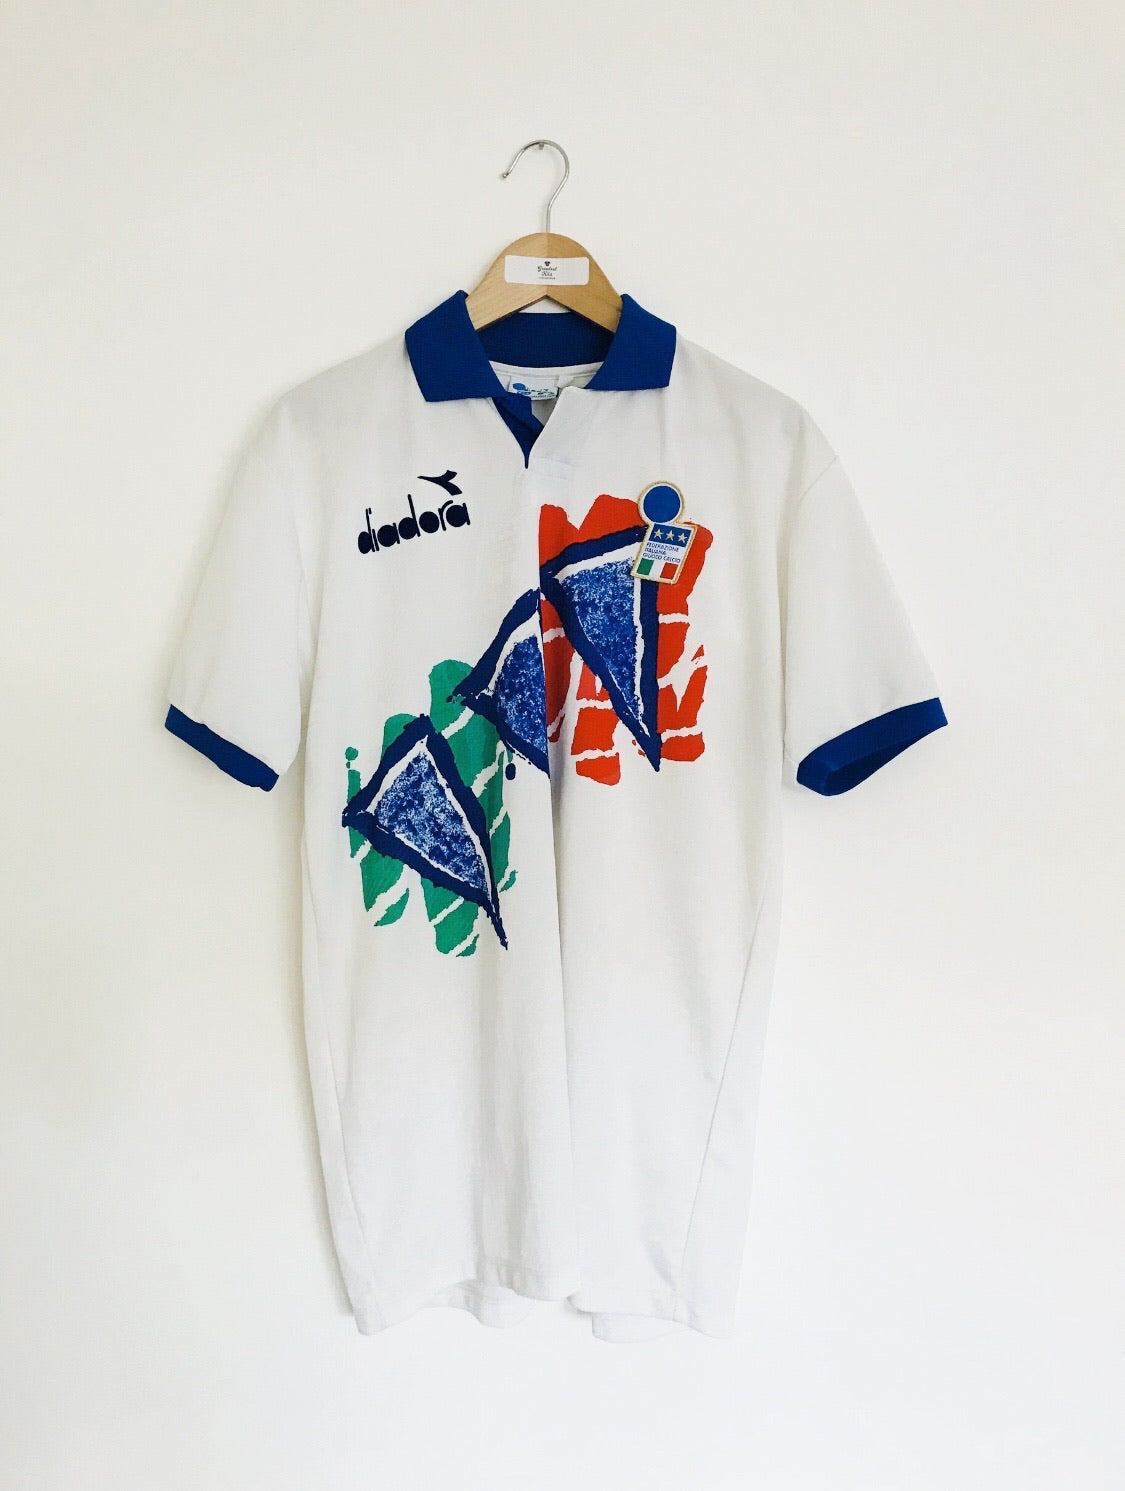 1993/94 Italy Training Shirt (L) 8.5/10